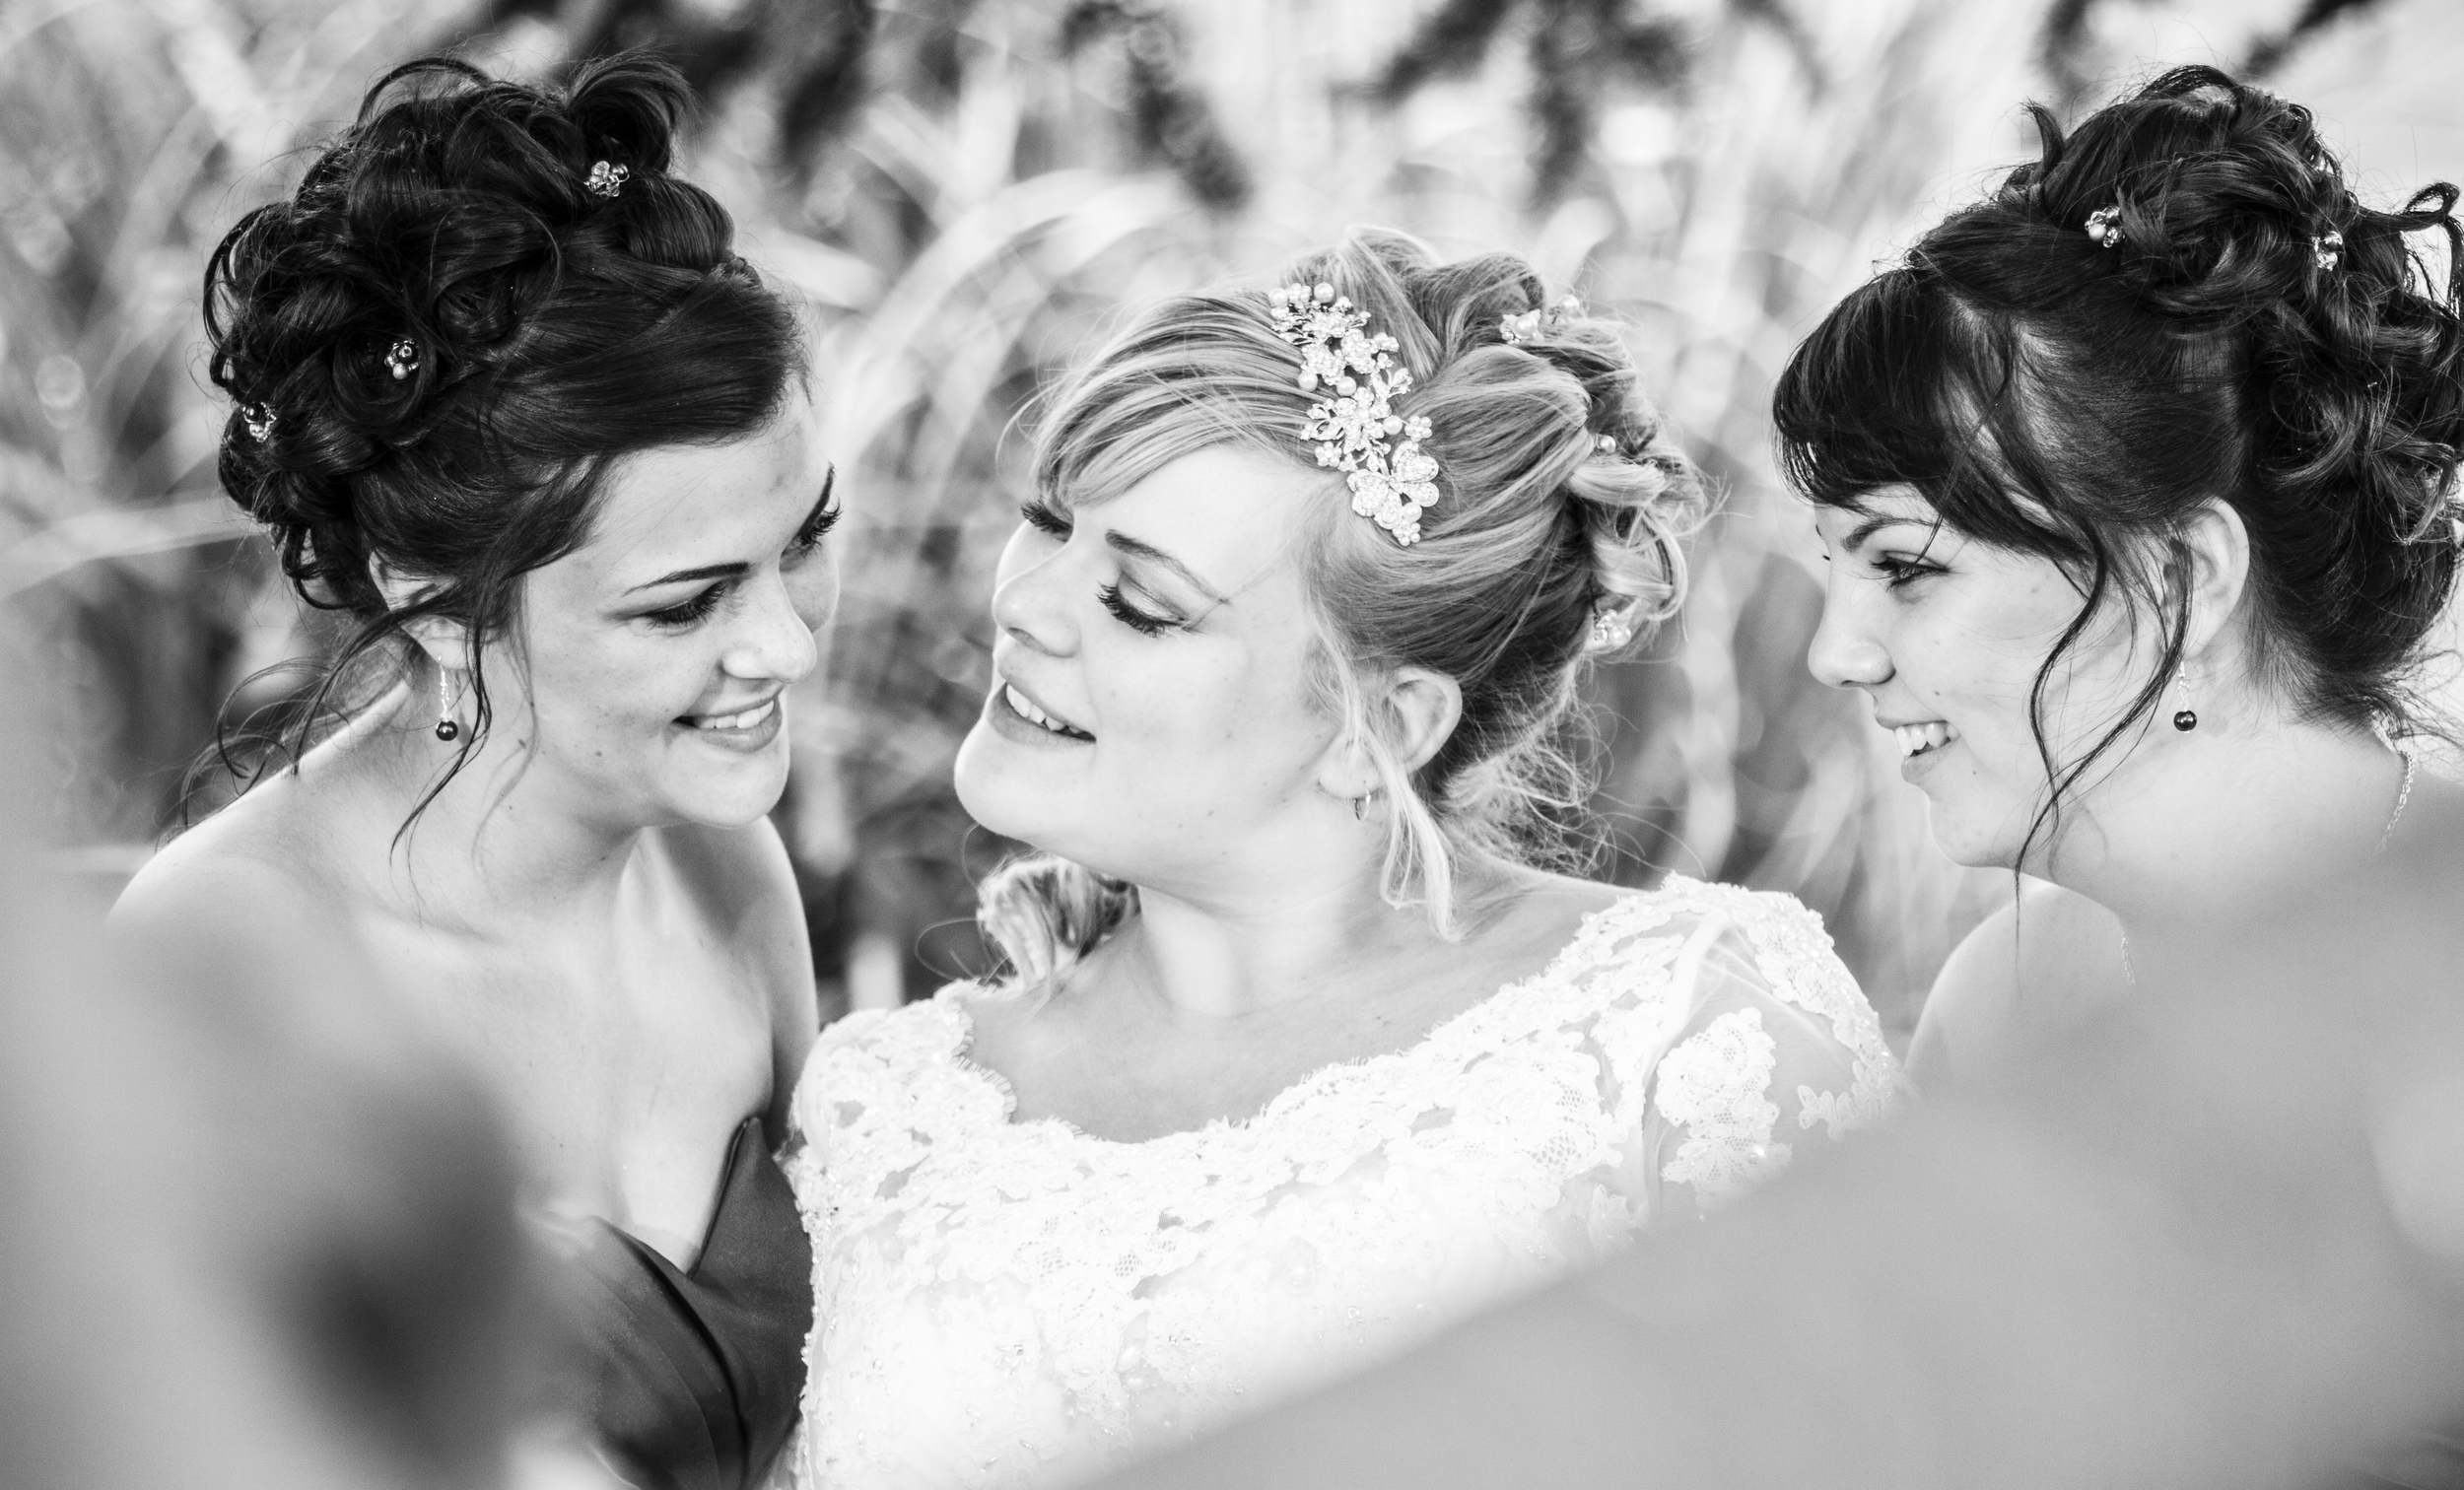 22-06-2013_Alex_Pople_Jess_Lewis_Wedding_EDITED_00038.jpg